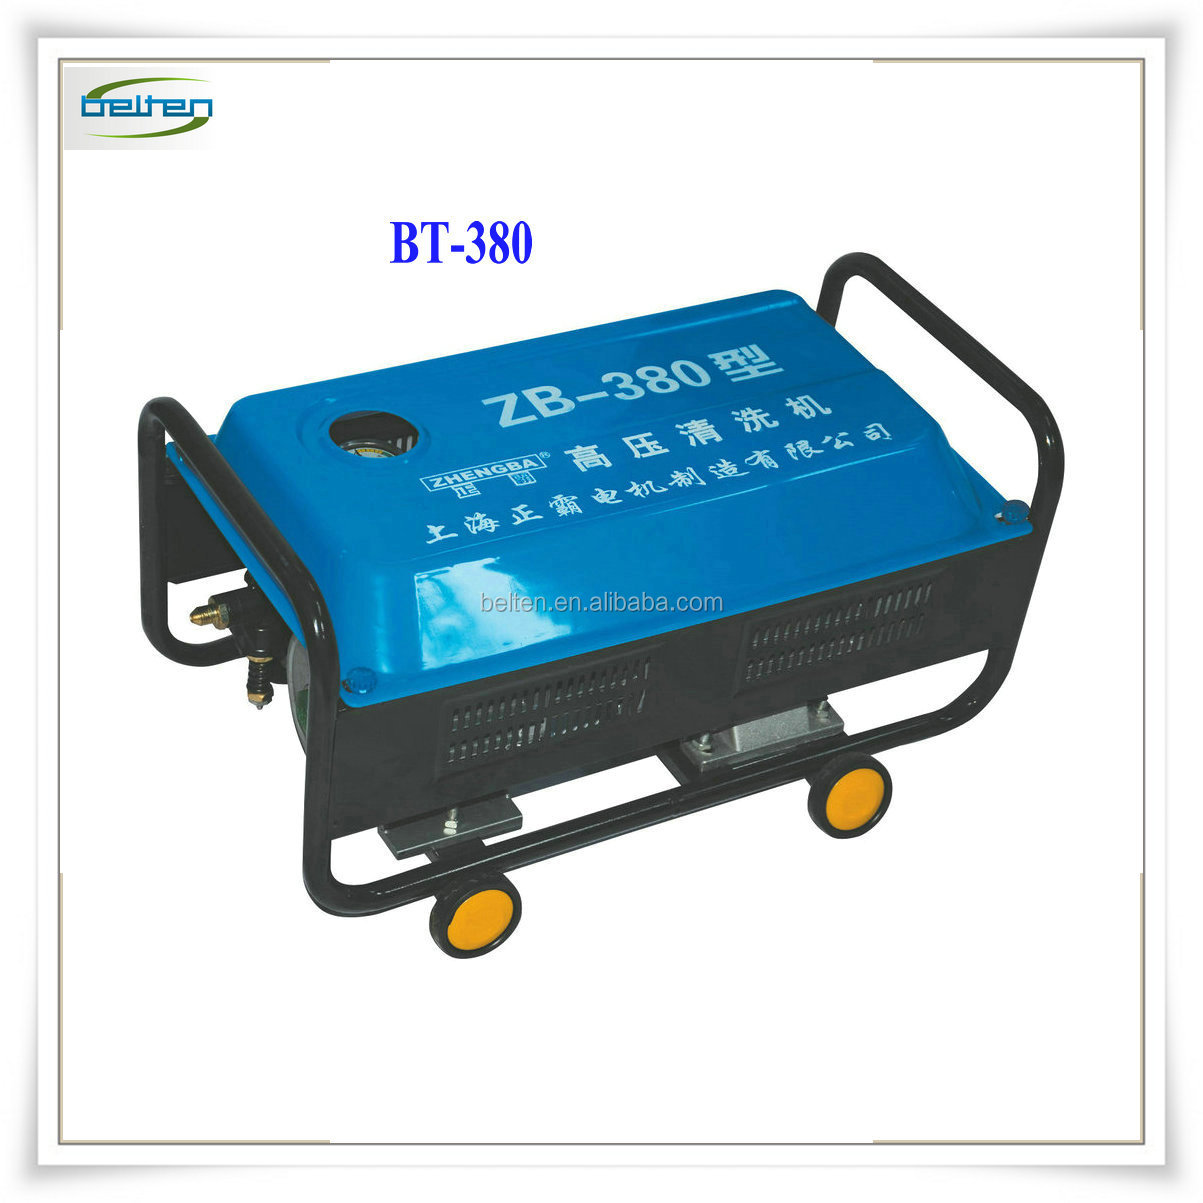 New OEM Low Factory Price 1.6KW 1-6MPa Used Washing Machine Mini Portable Washing Machine Portable Washing Machine